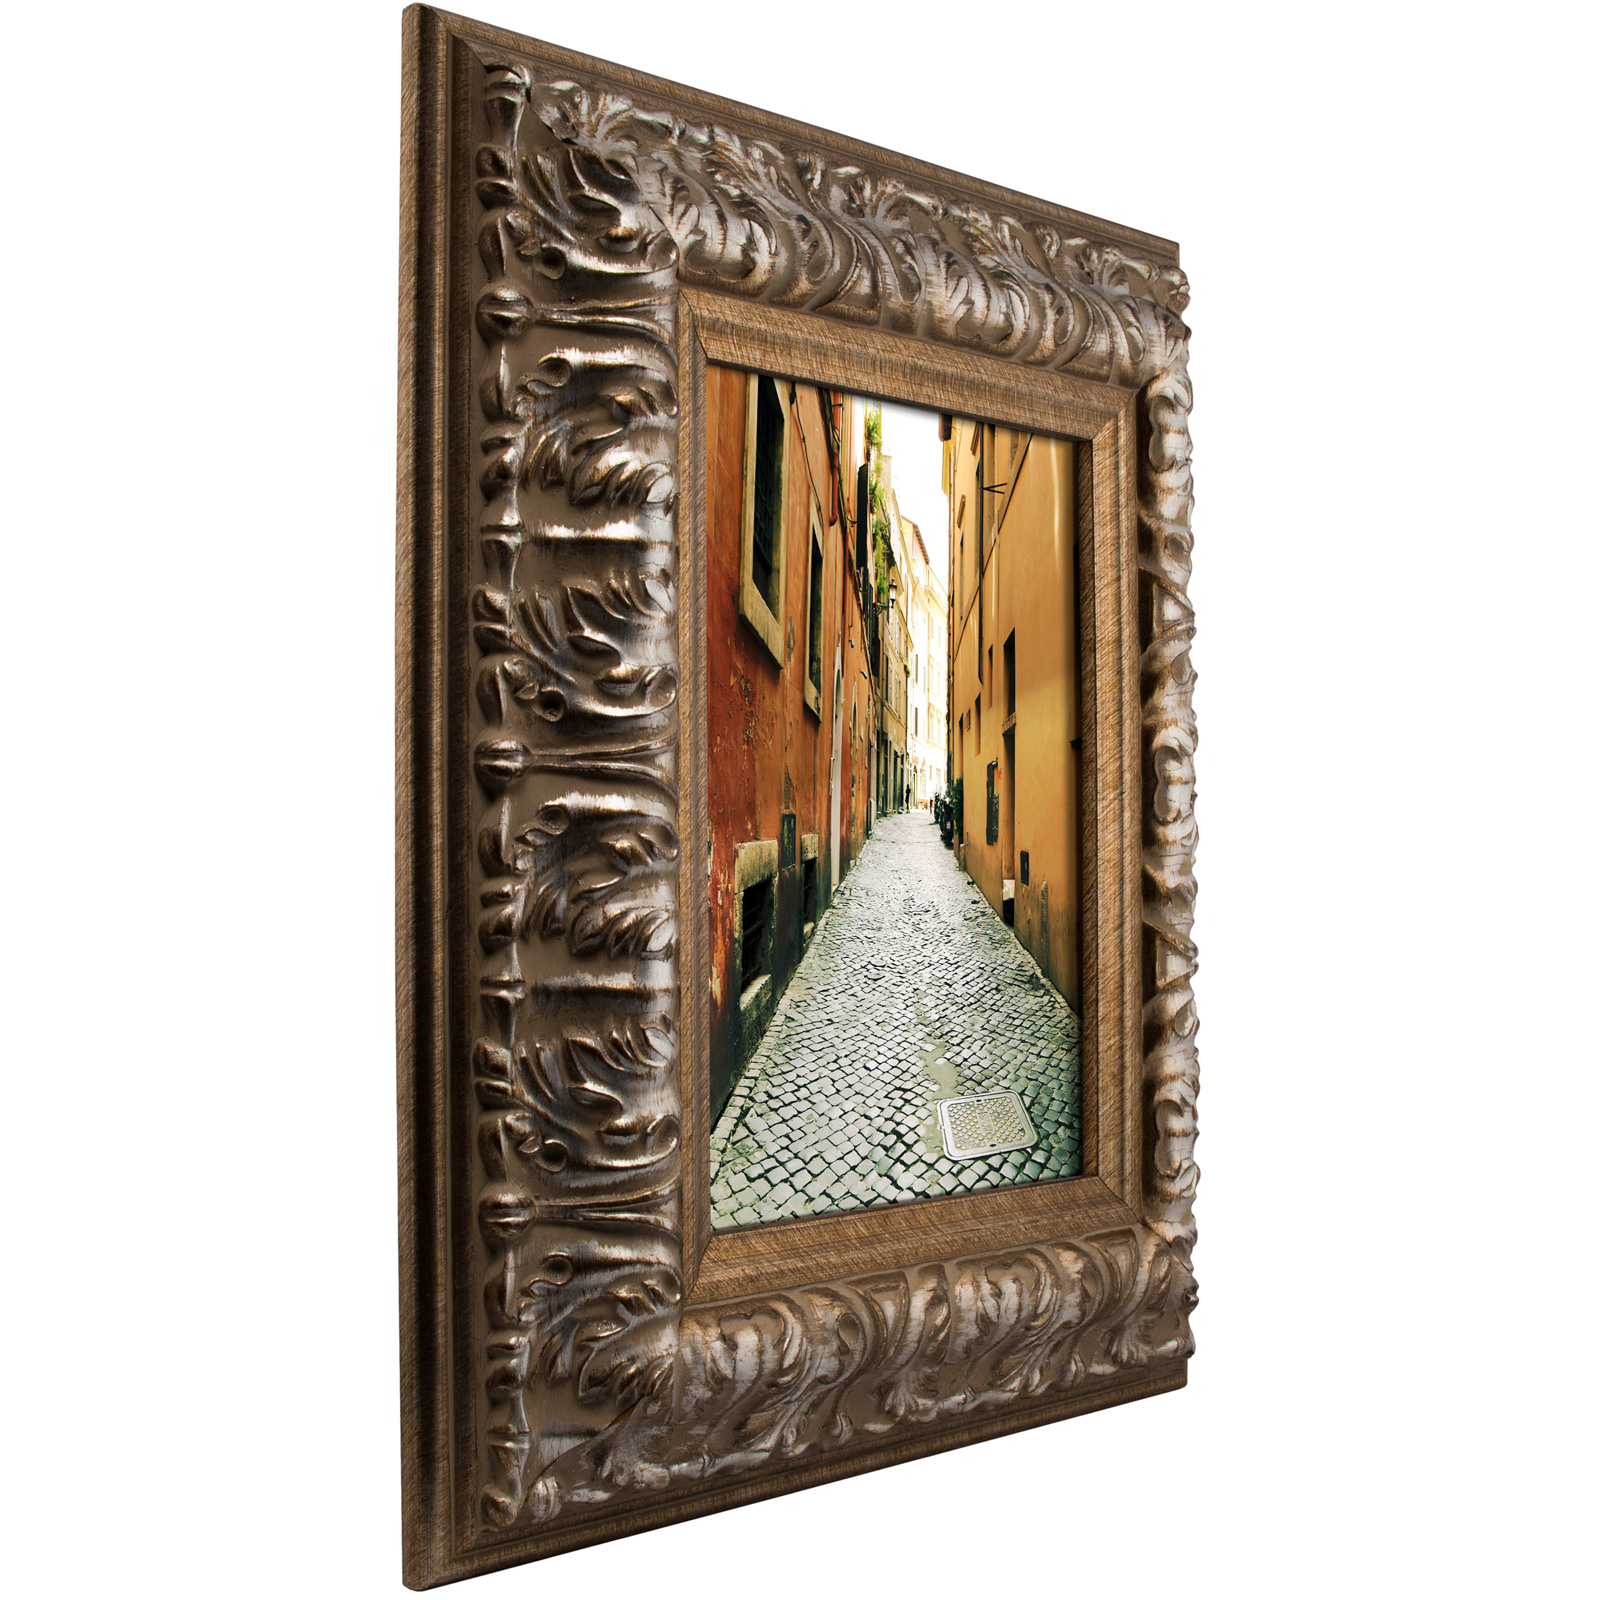 craig frames barroco antique baroque silver picture frame. Black Bedroom Furniture Sets. Home Design Ideas